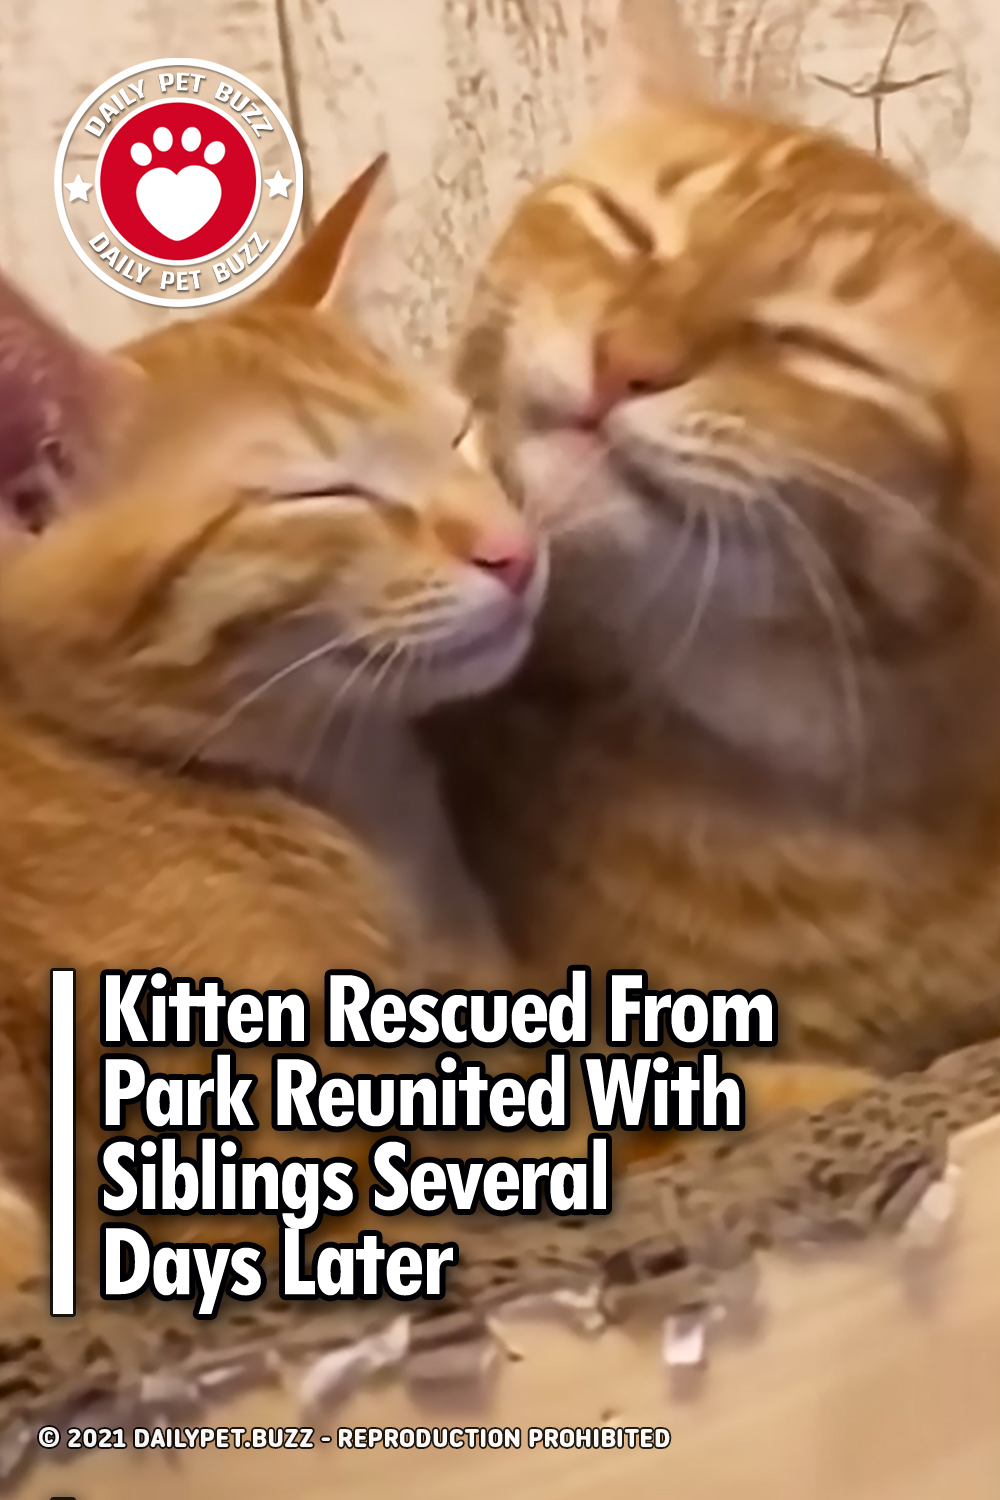 Kitten Rescued From Park Reunited With Siblings Several Days Later